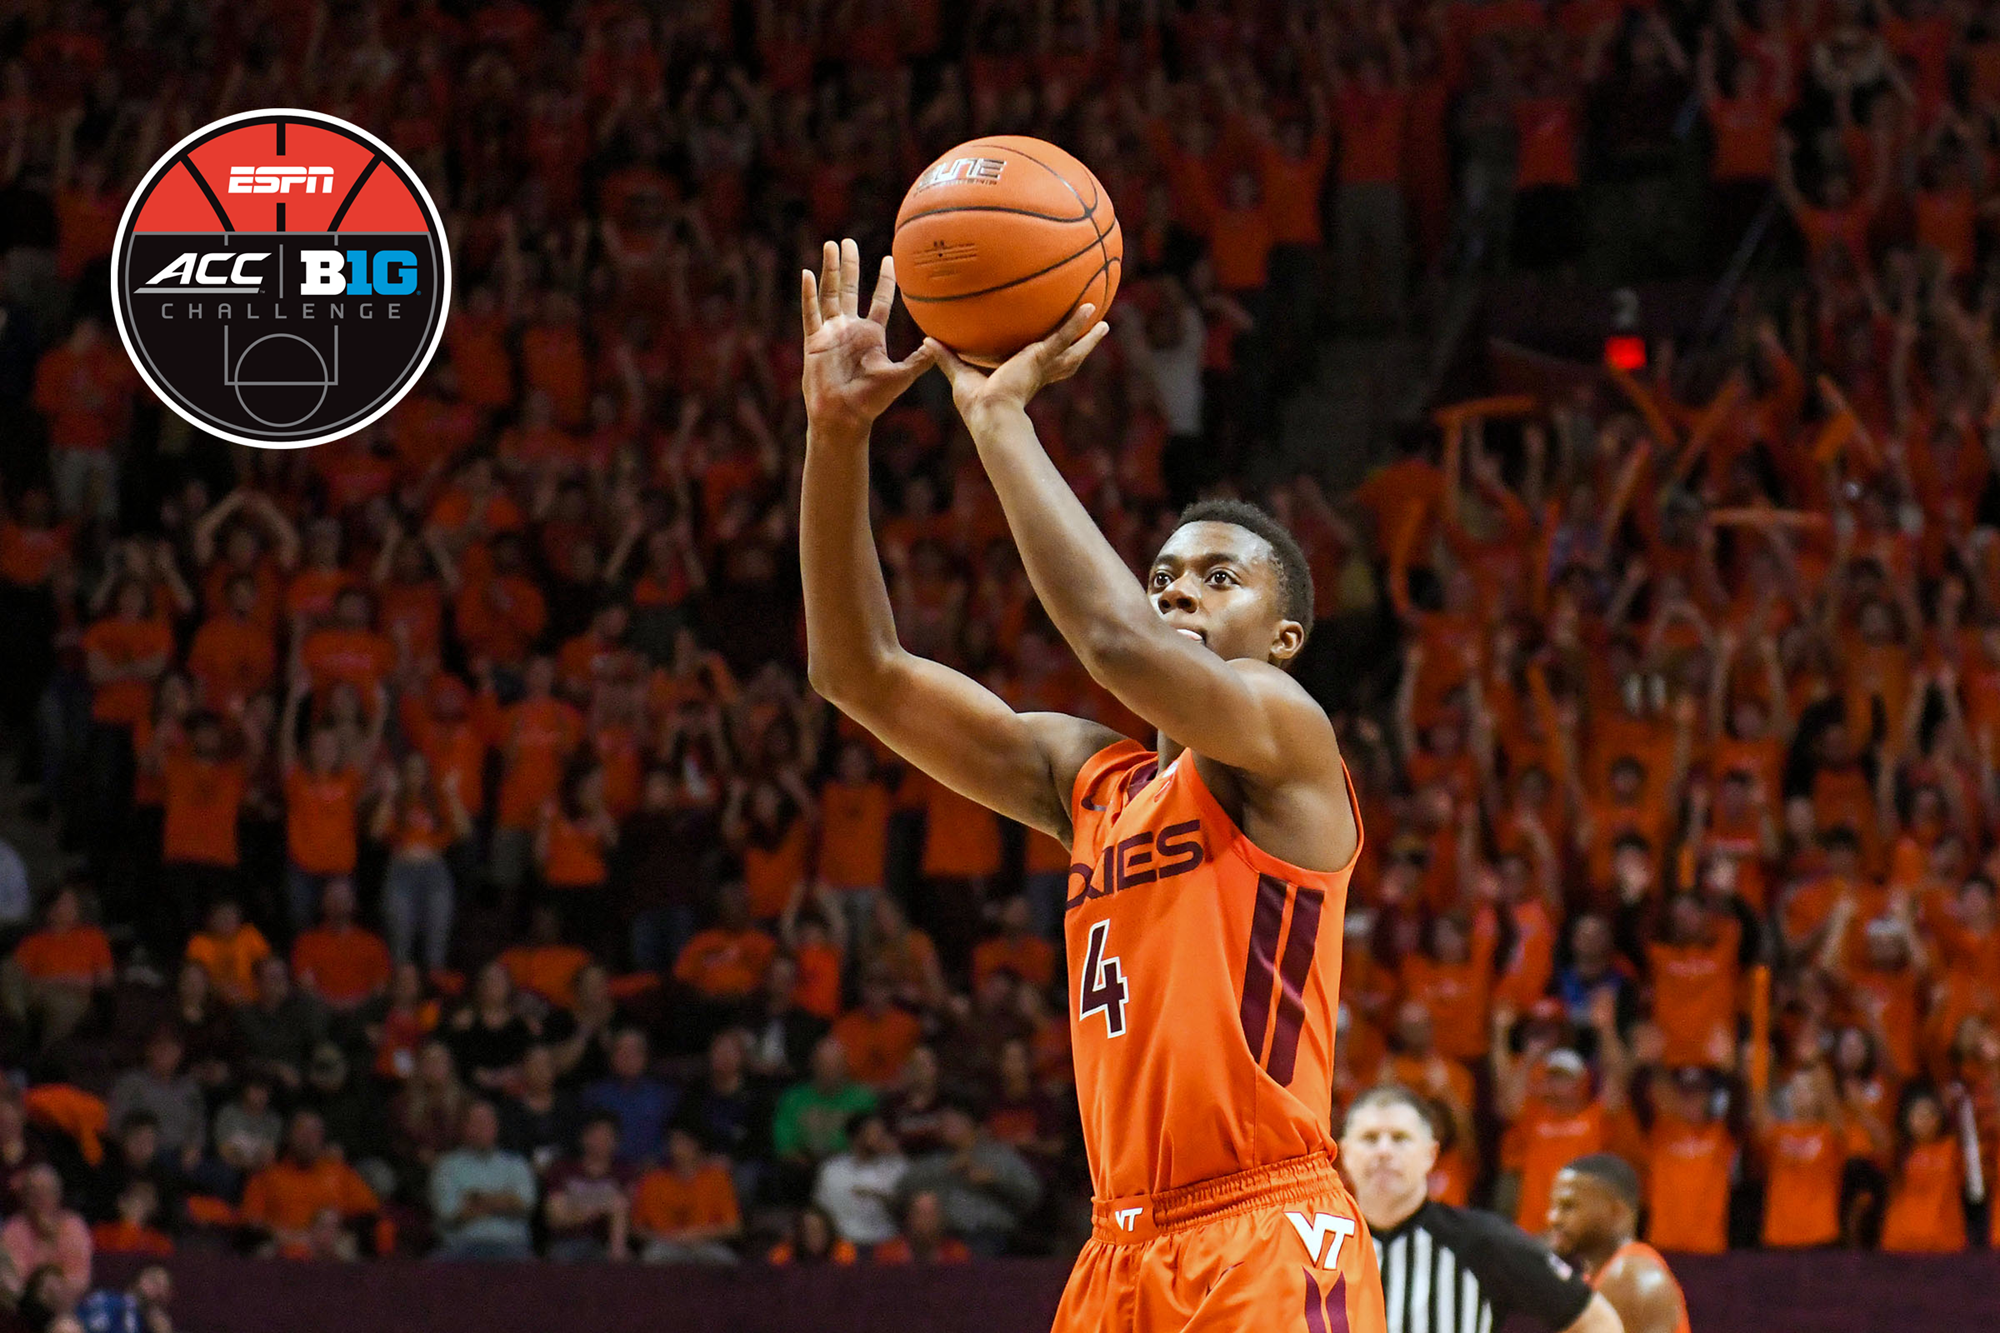 Tech To Face Penn State In Acc B1g Challenge Virginia Tech Athletics